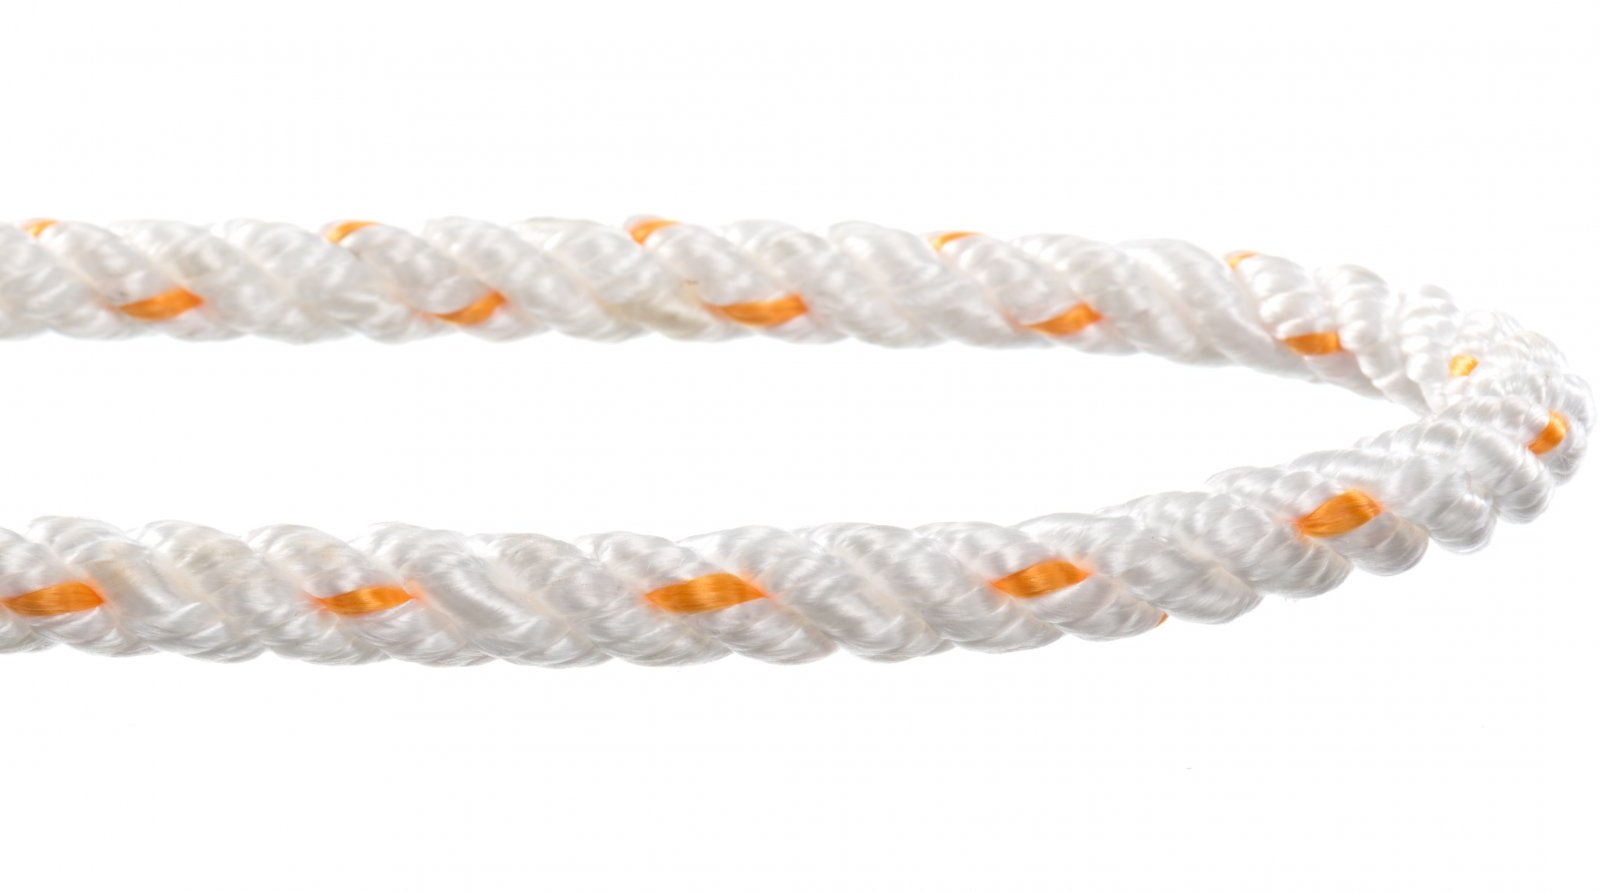 Polypropylene 3 Strand Multi Filament ropes - Lowest prices